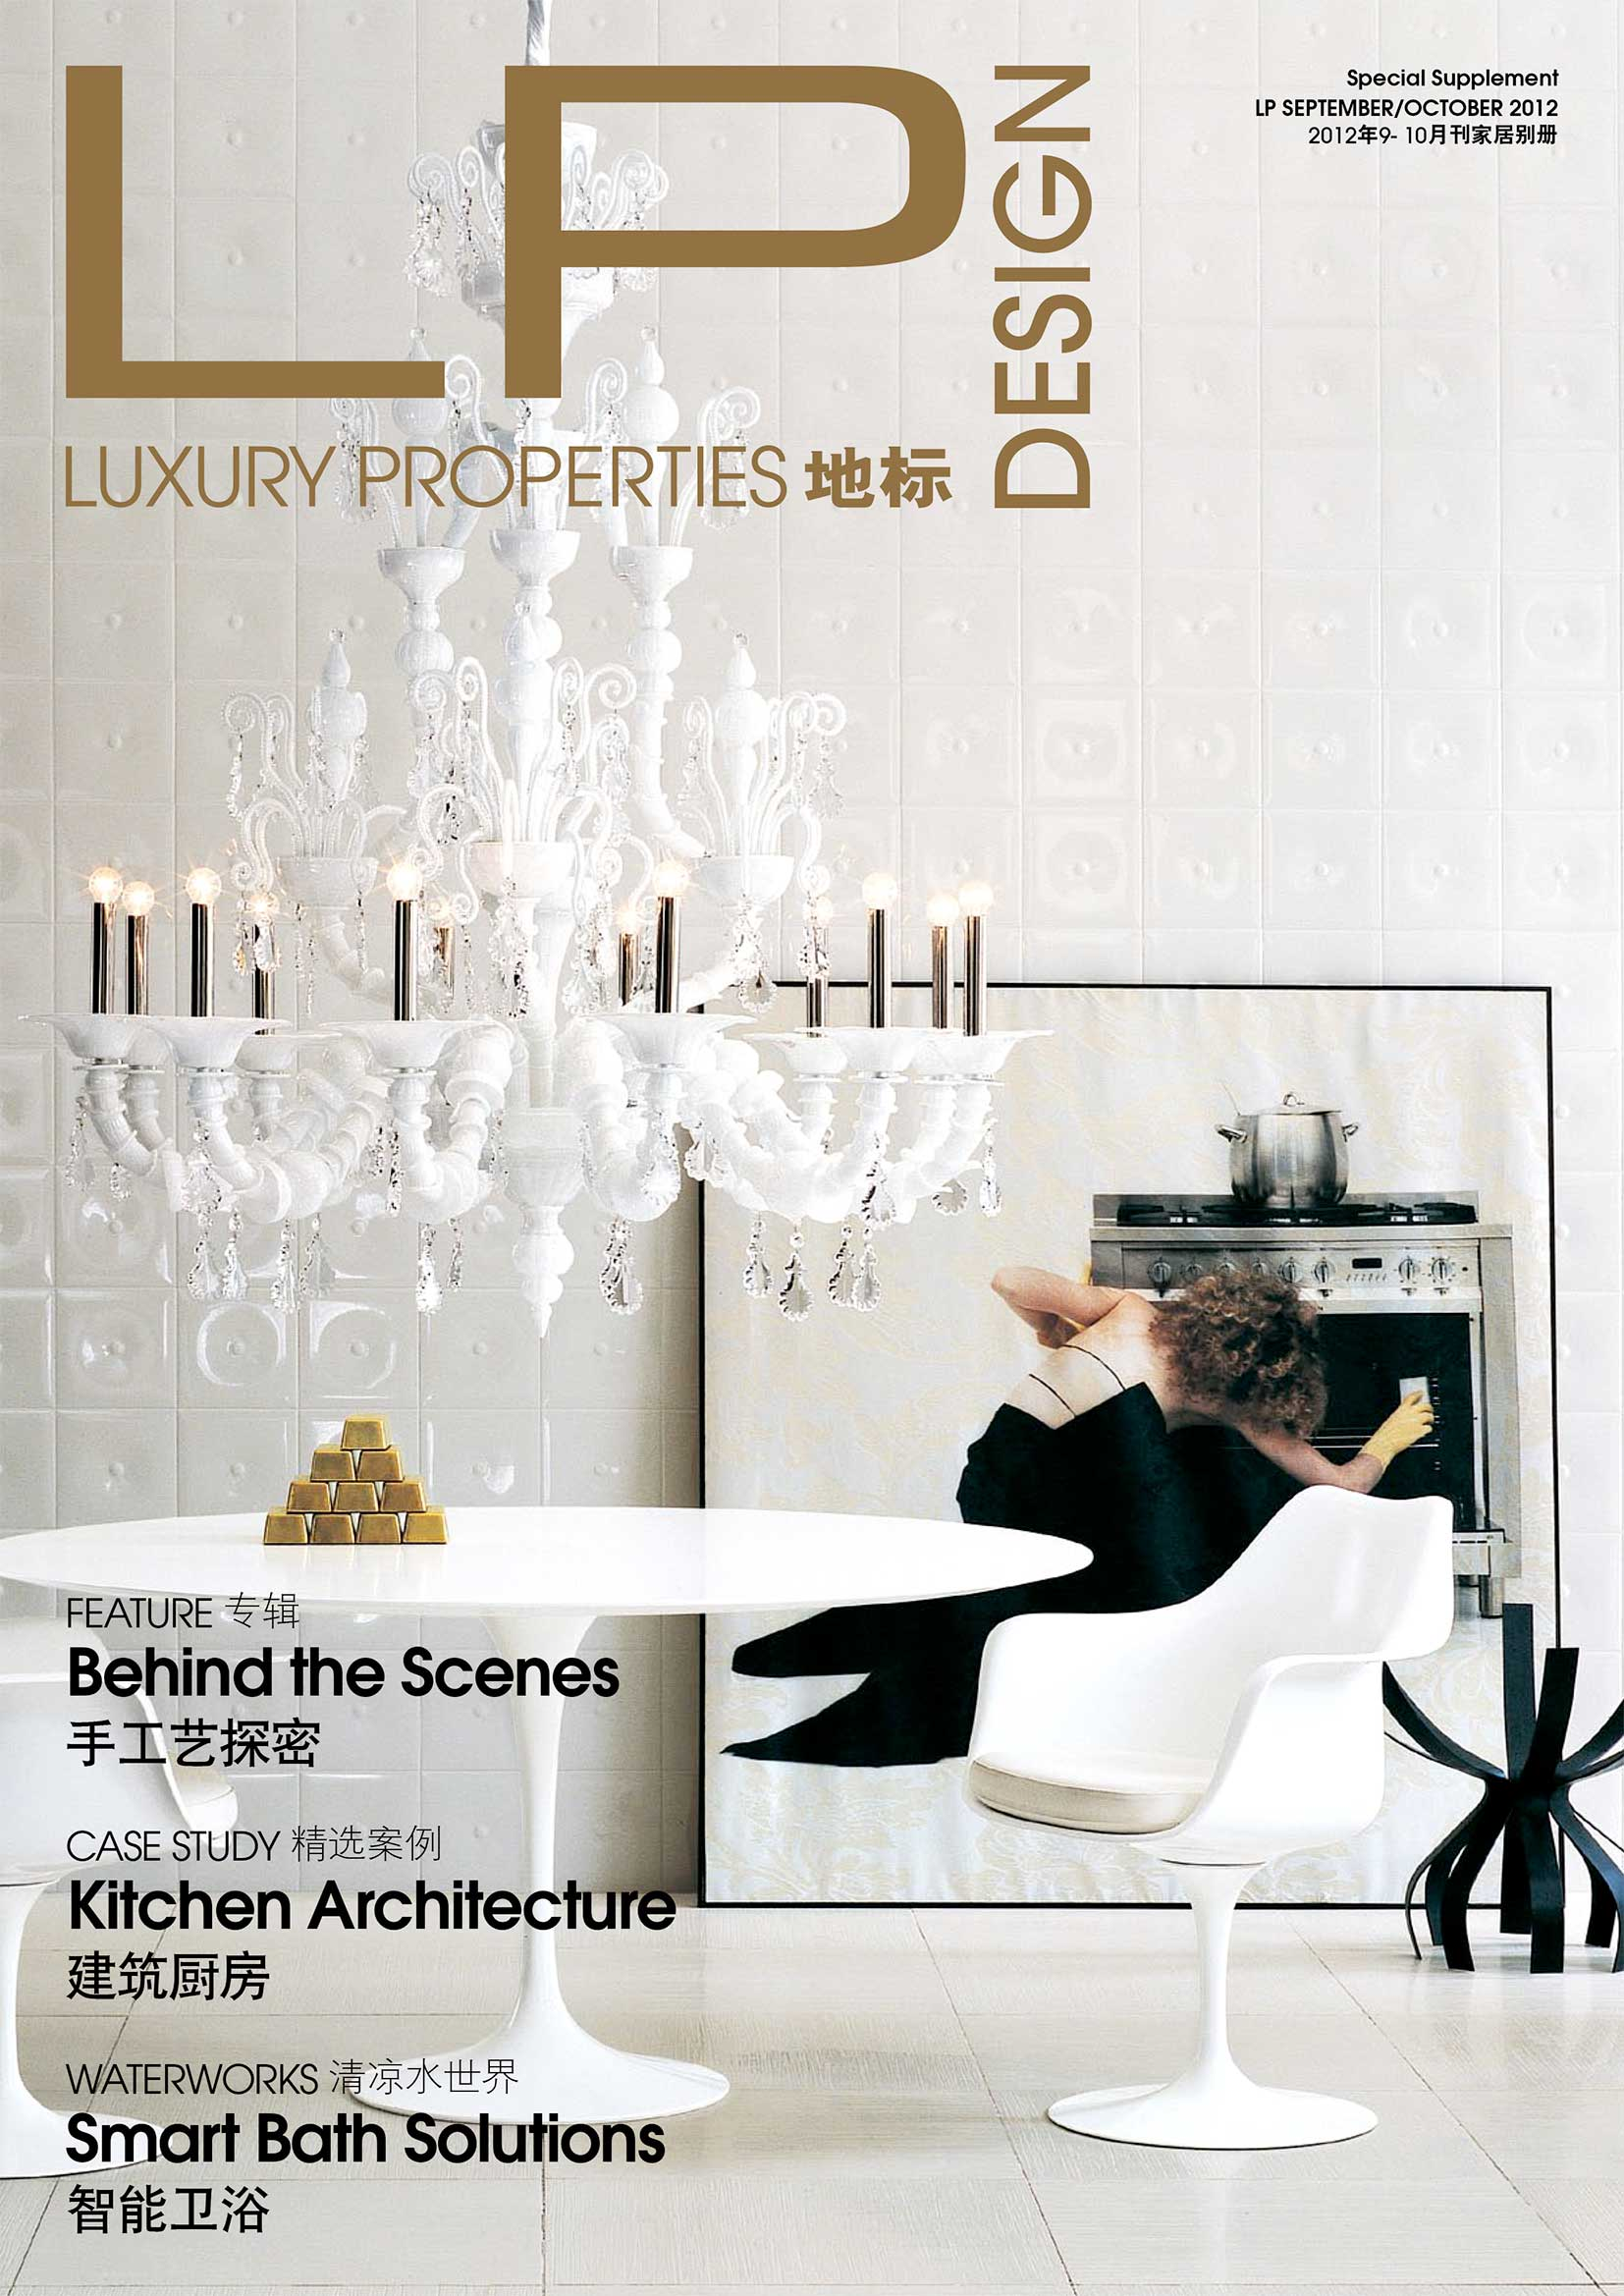 Luxury-Properties-Supp-2012-Cover